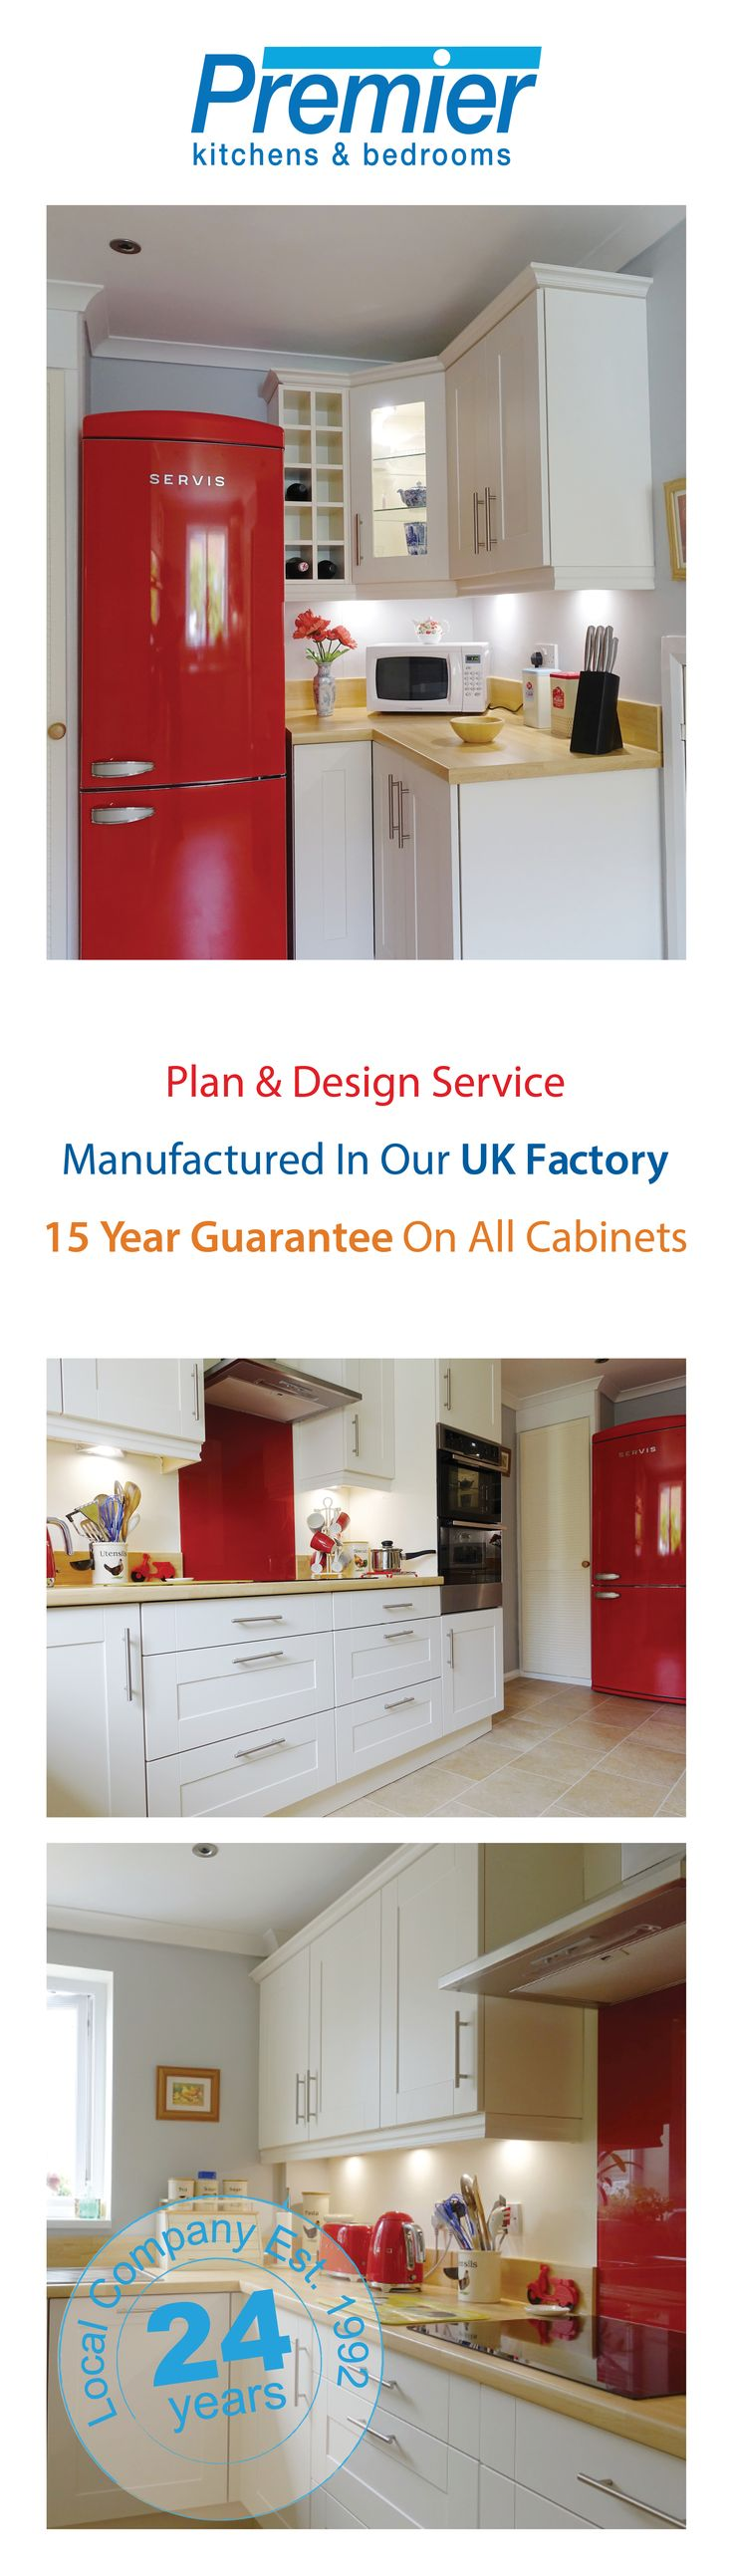 Take a look at these photographs of a recently completed red themed shaker style Premier Kitchen. Thank you to Mr Graham for letting us share these photos of their finished room. If you would like to create your own bespoke design visit www.premier-kitch... to book a 3D Plan and Design Appointment. Stunning showrooms in Cambridge, Peterborough, Lincoln, Bedford, Northampton and Wellingborough